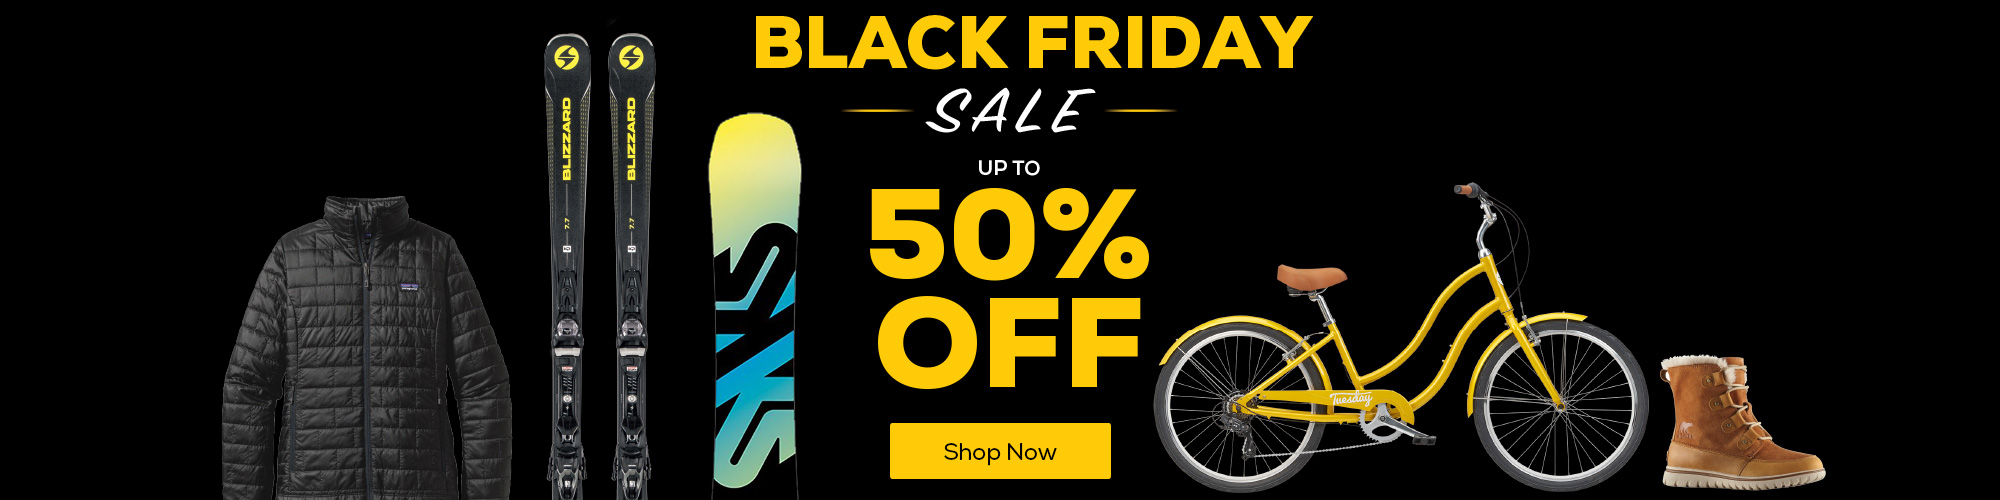 Black Friday Sale. Save up to 50% Off.